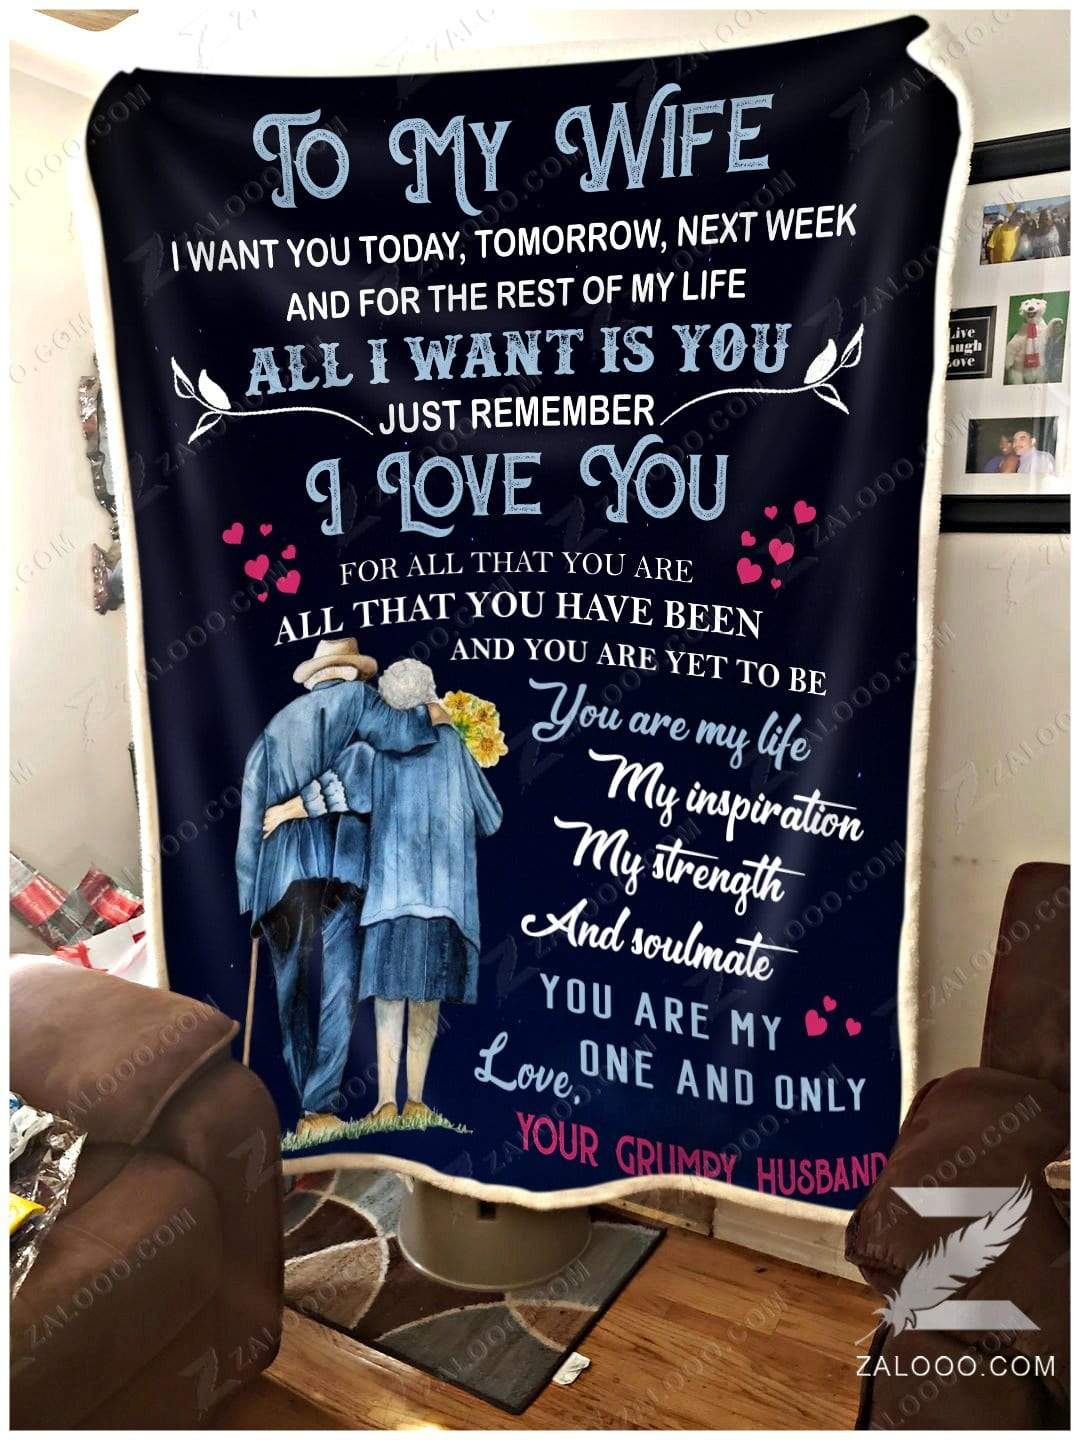 To my wife - I want you for the rest of my life Quilt Blanket EP2749